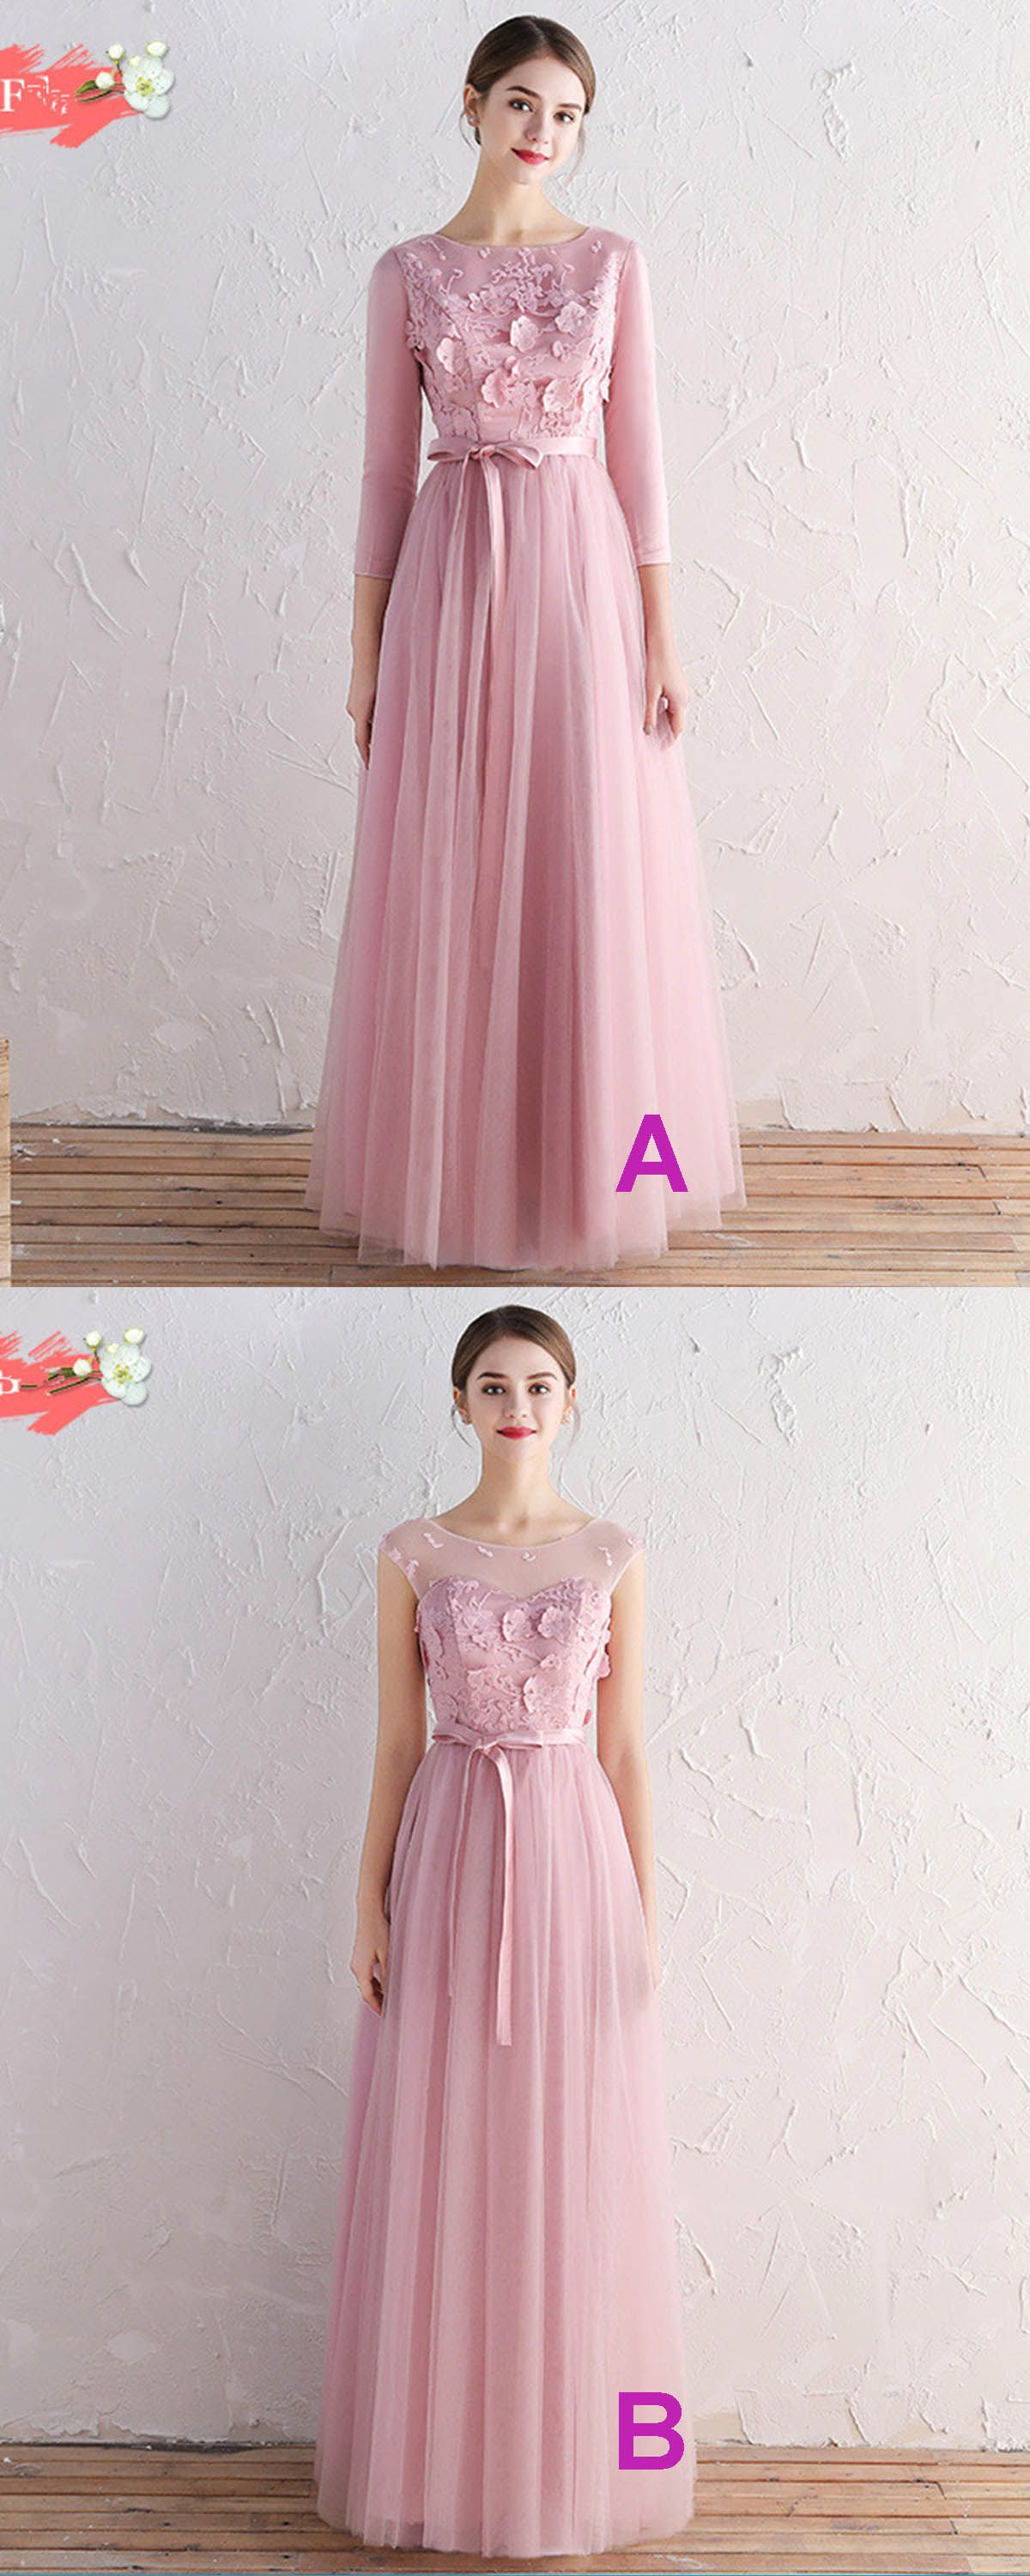 Pink tulle scoop neck long aline prom dress bridesmaid dress with